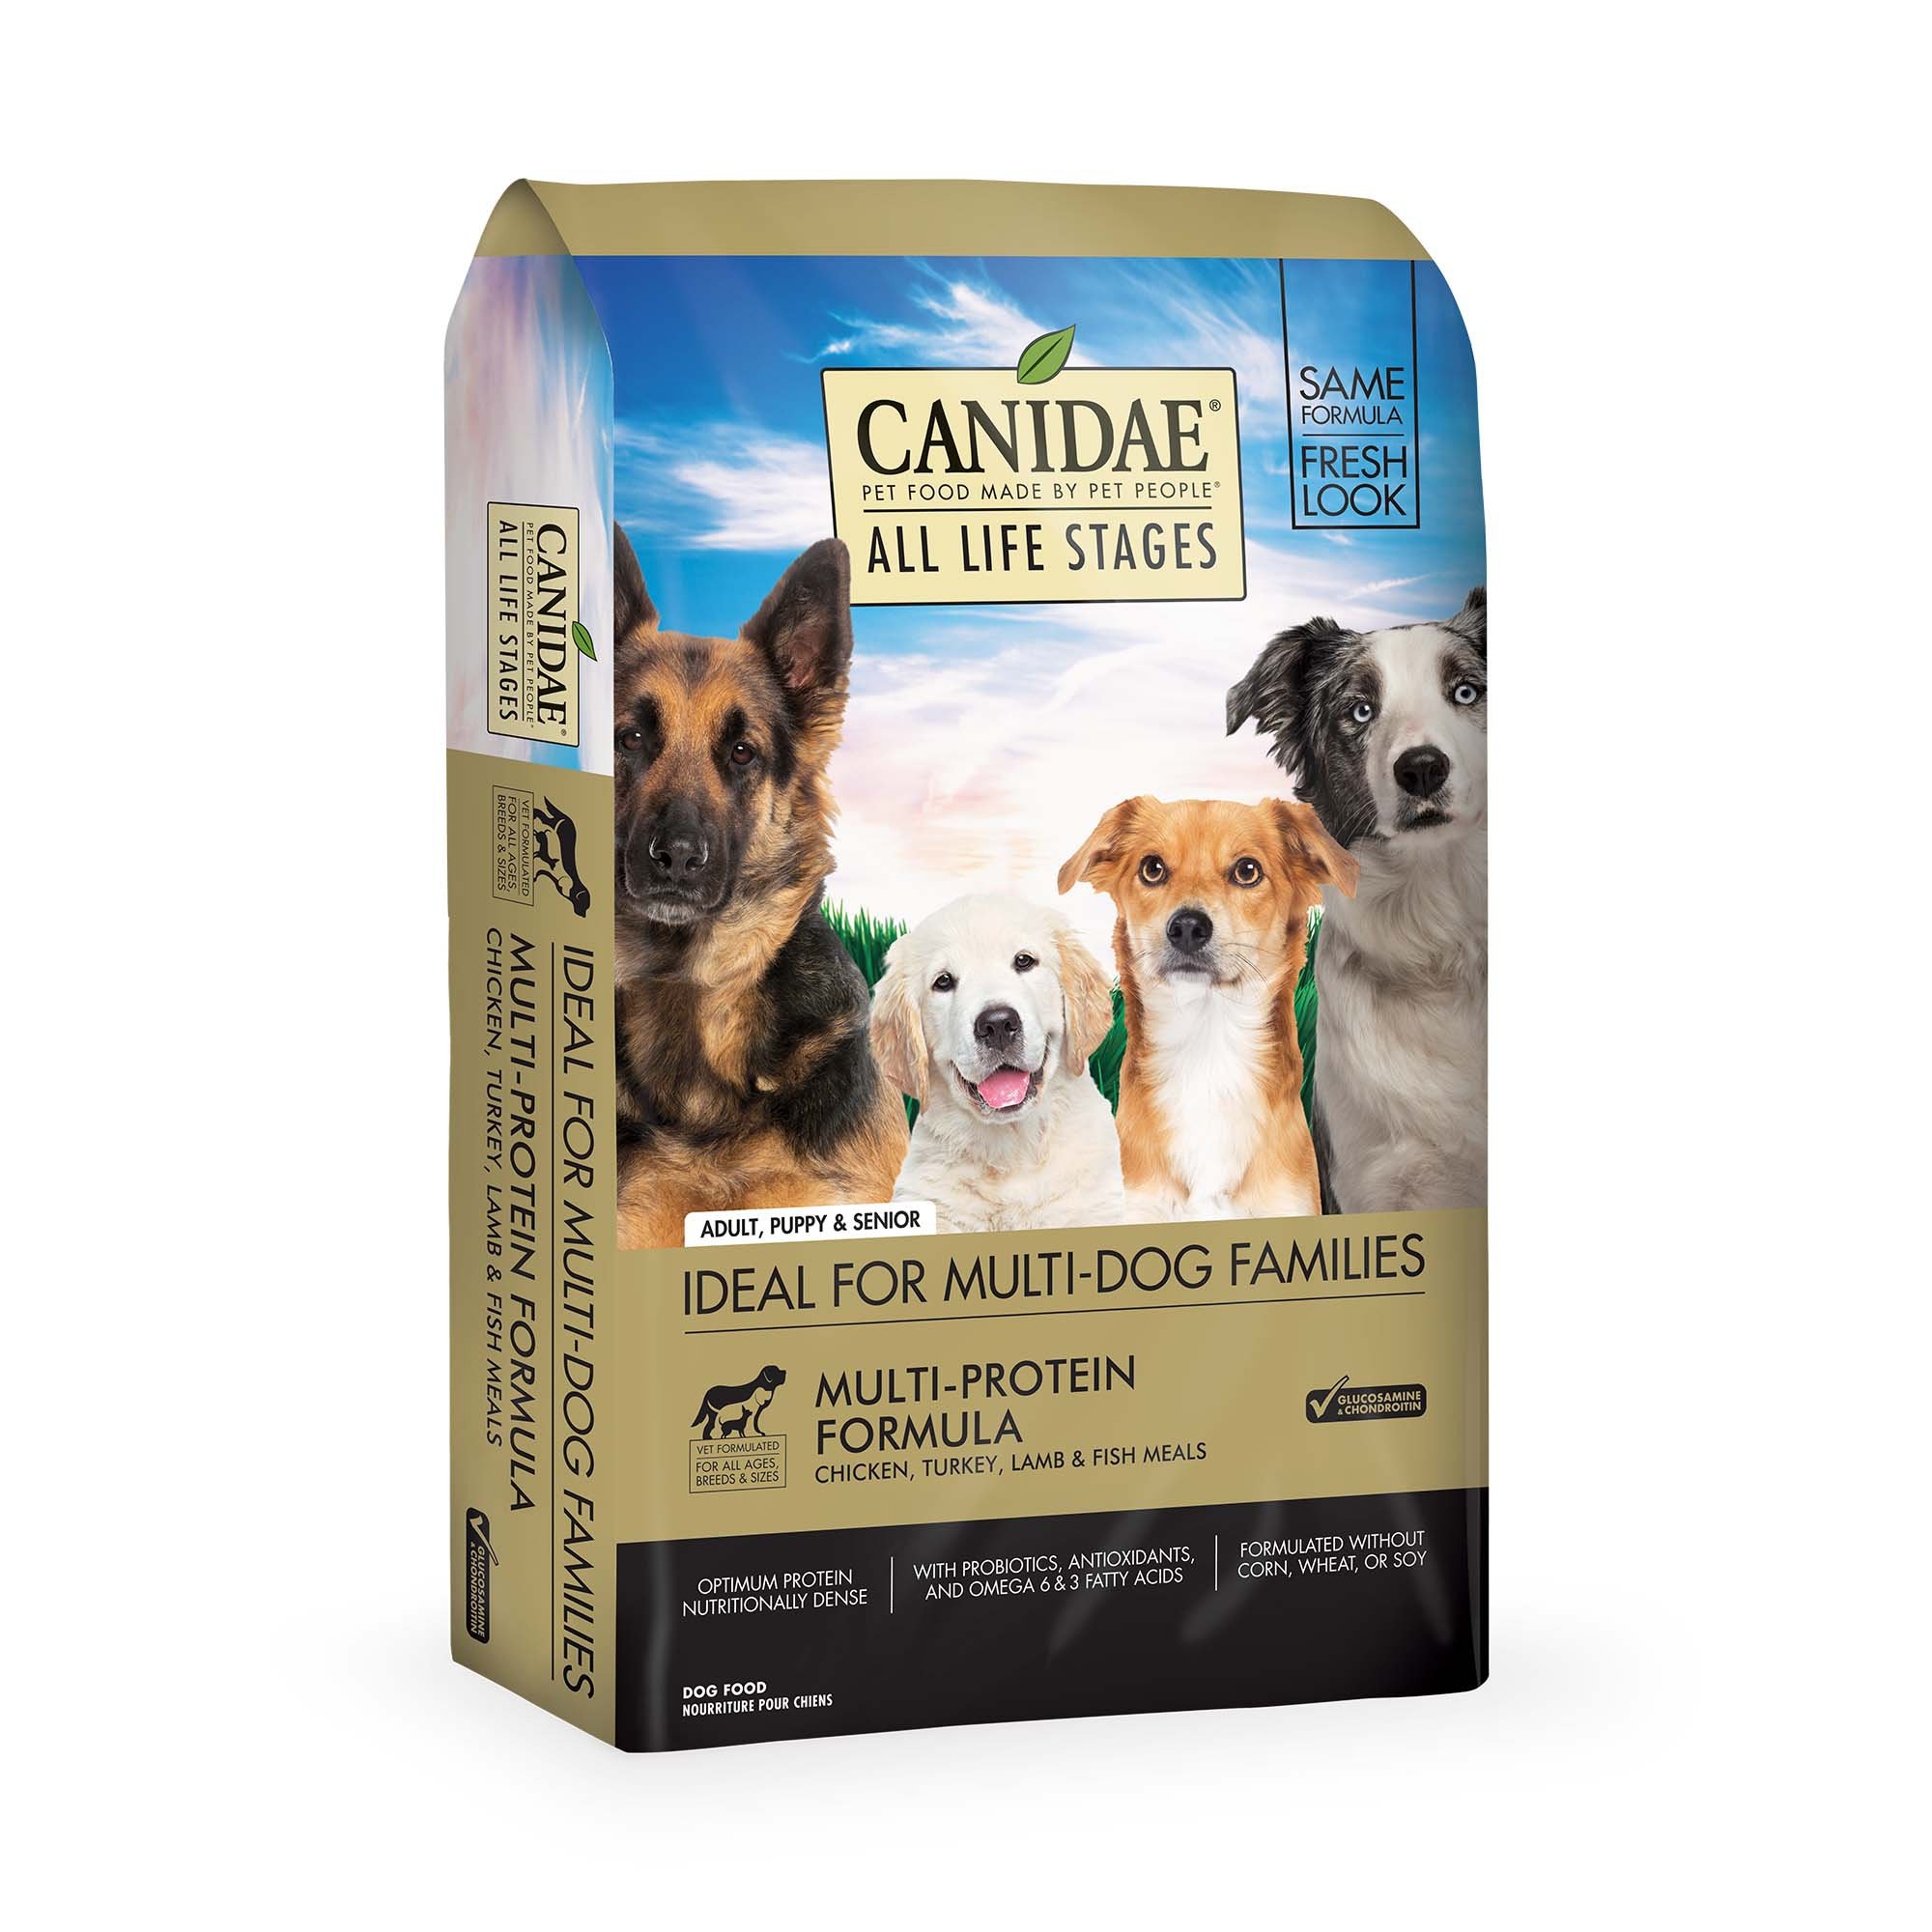 Canidae Life Stages All Life Stages Dog Food